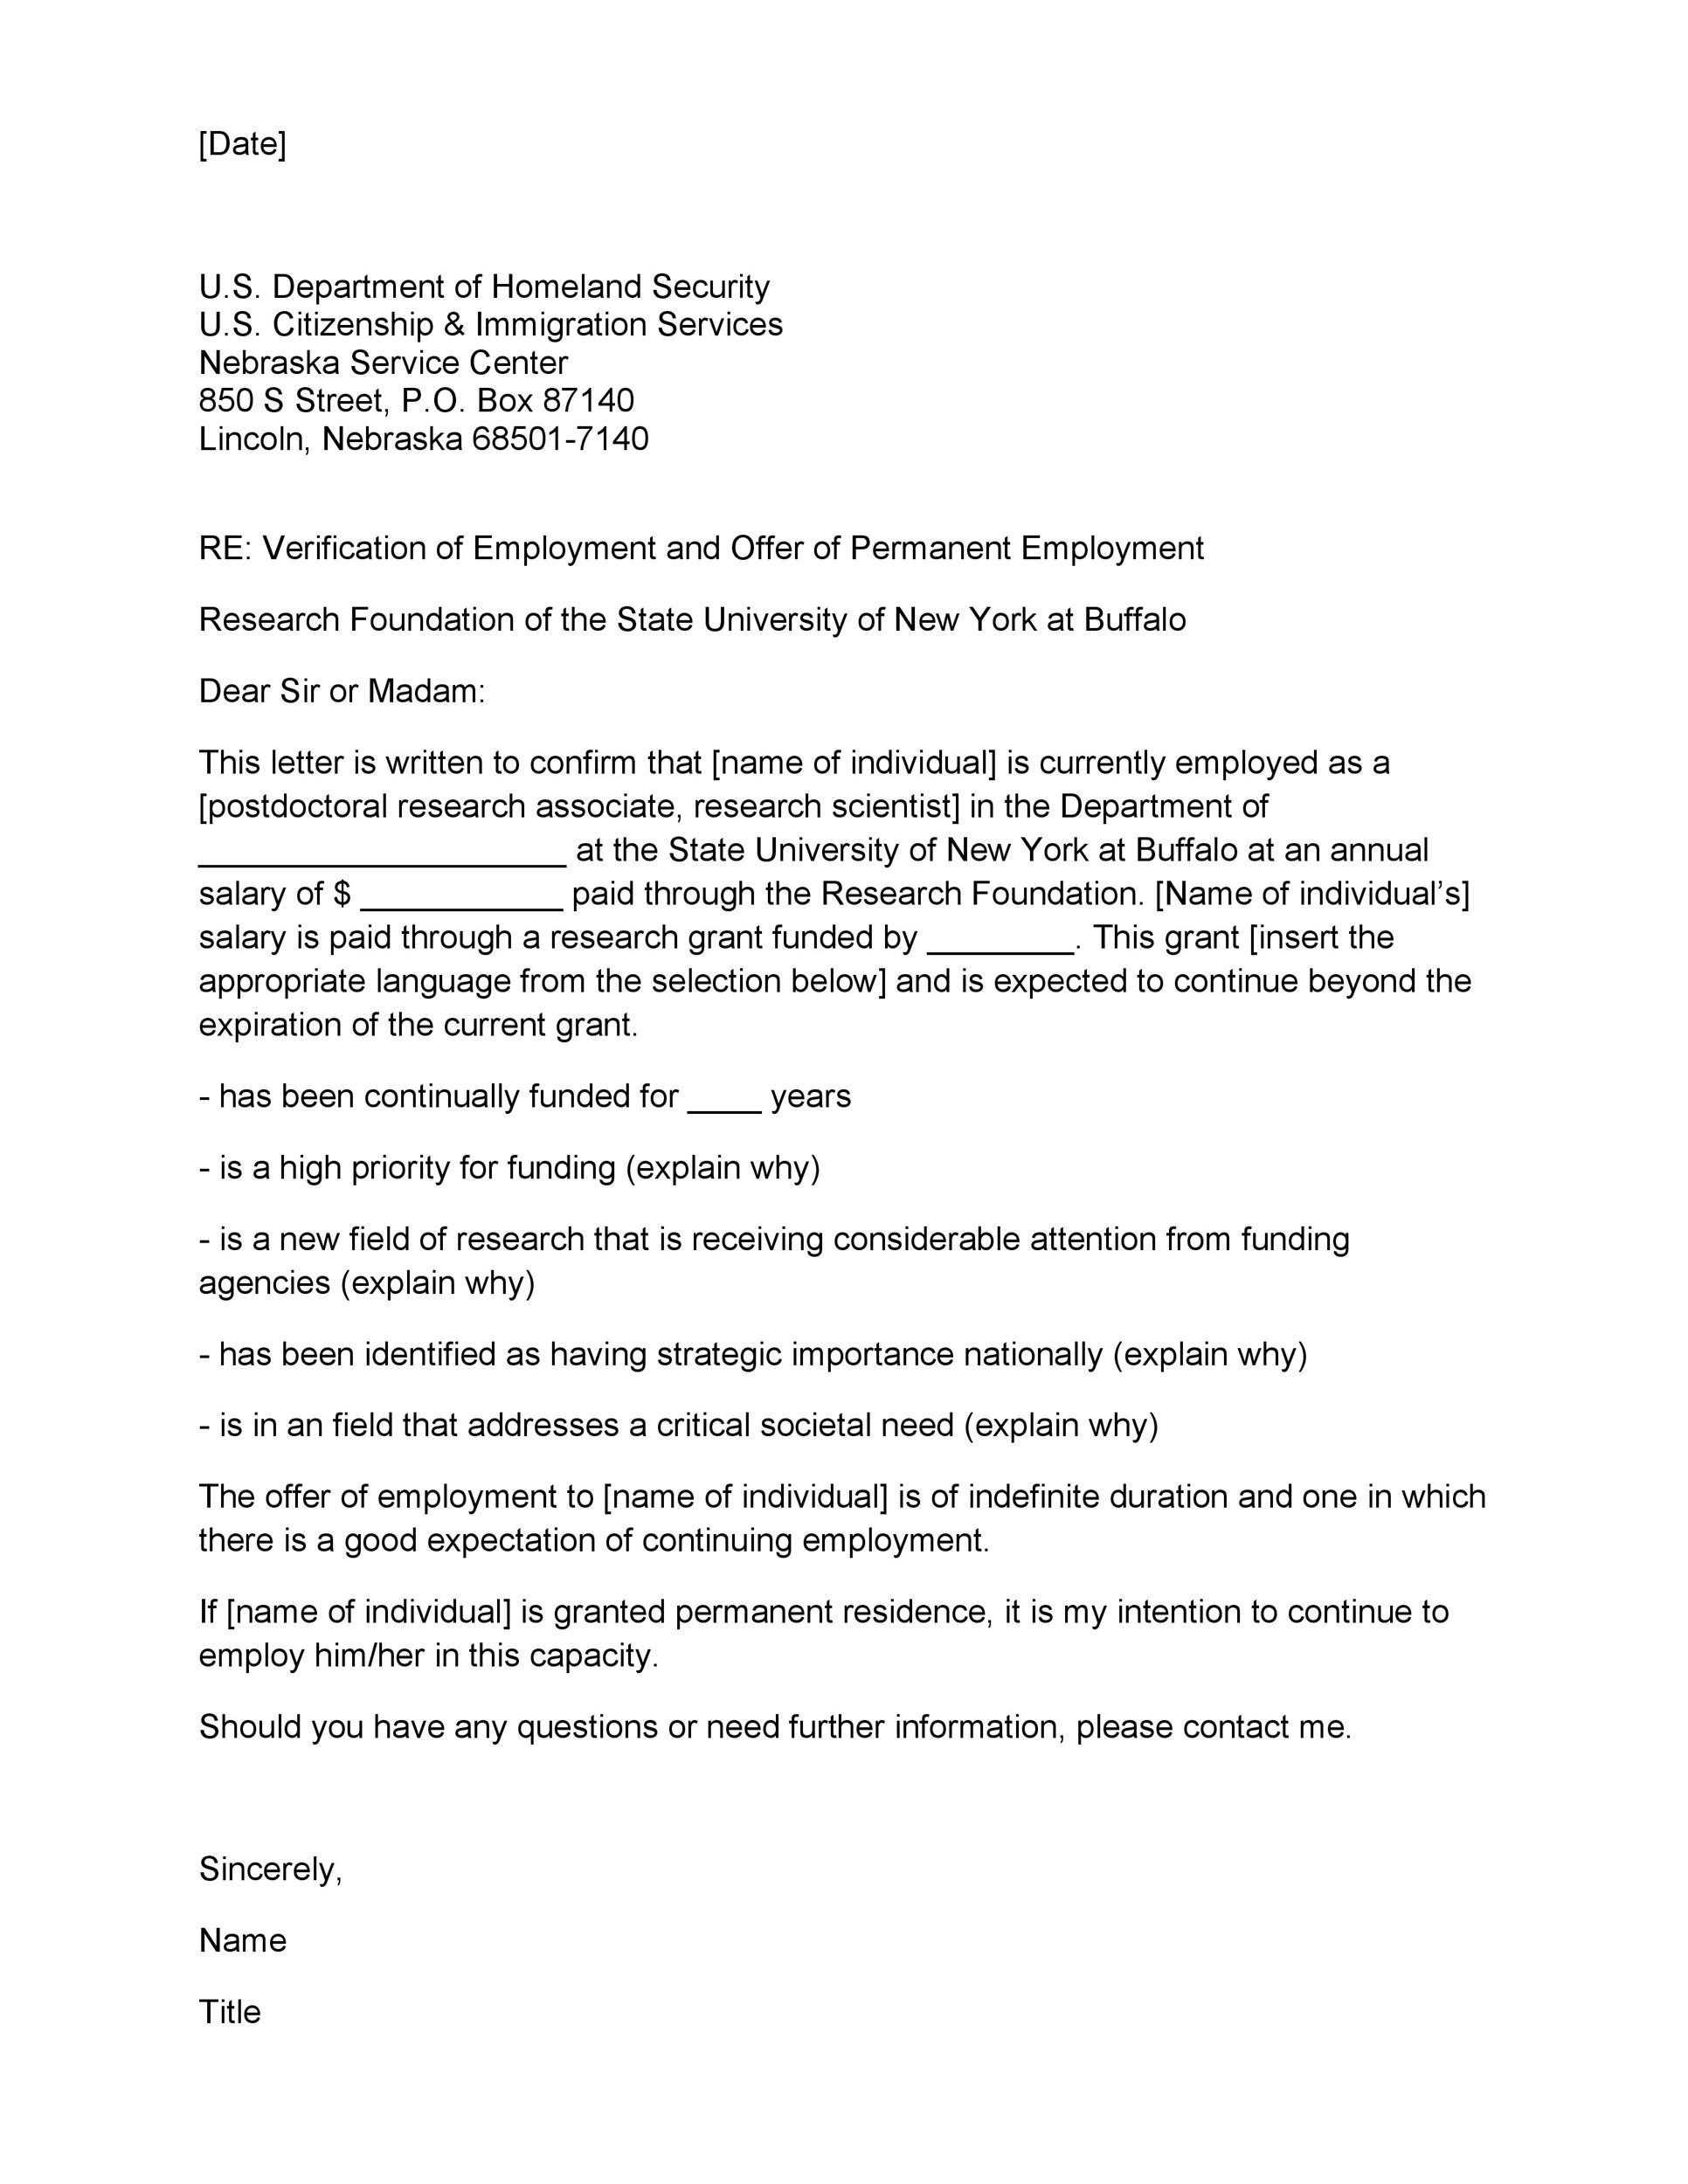 Proof of employment letter 32